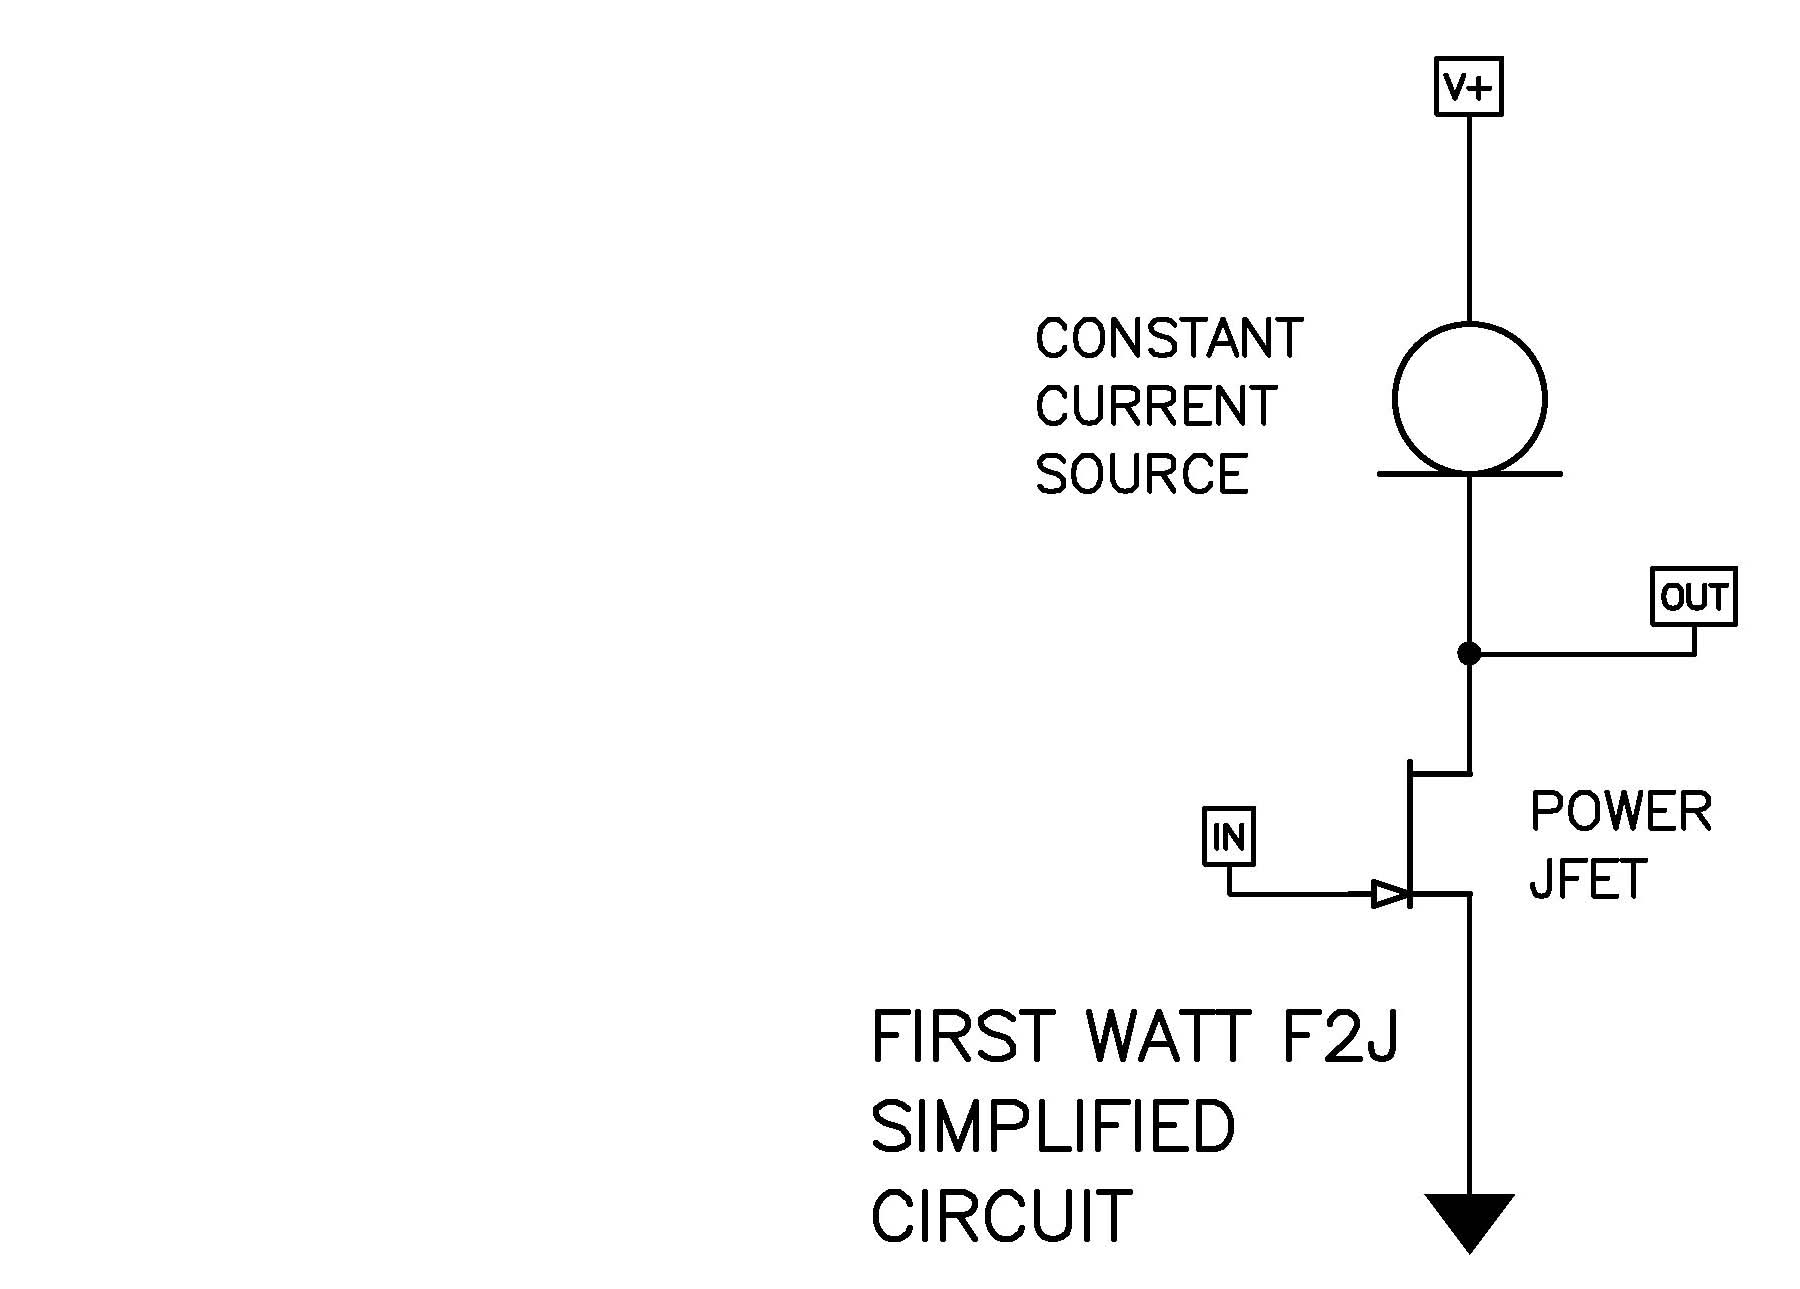 First Watt Audio Amplifier Circuit Using Mosfet Simple In Addition There Have Been Changes To Several Resistor Values And Removal Of The Input Zener Protection Diodes As With F2 Simplified